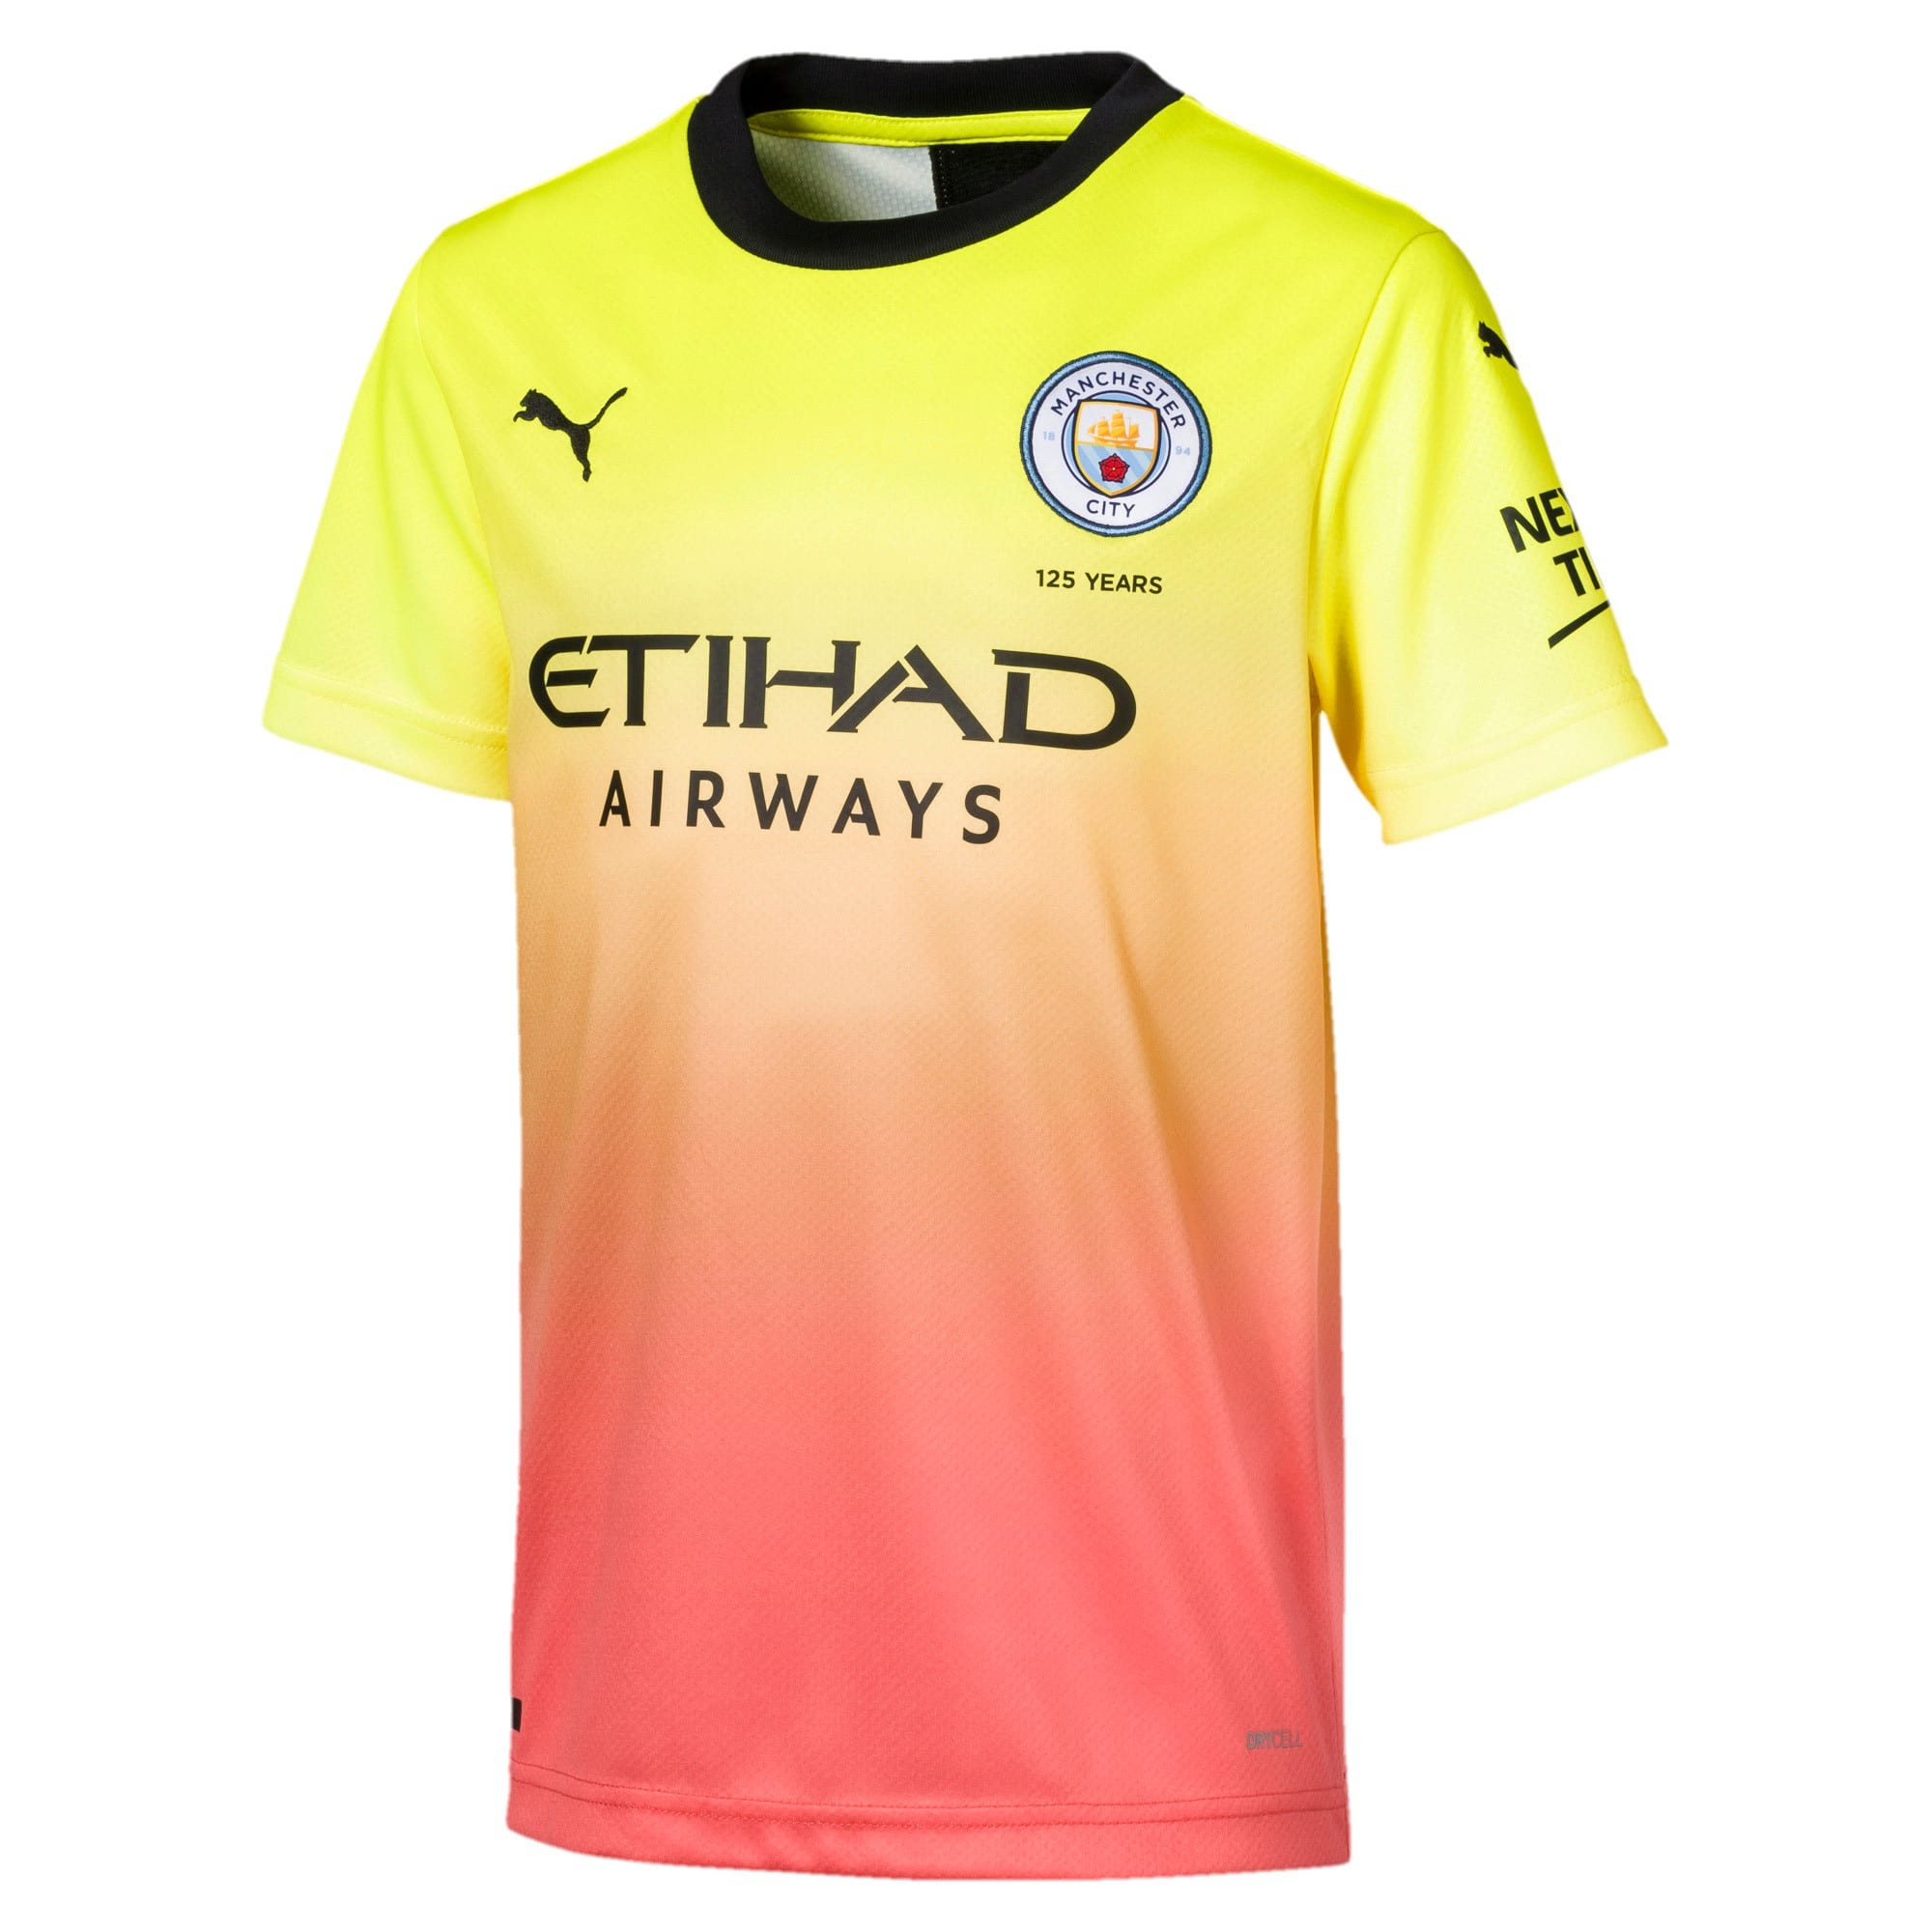 Thumbnail 1 of Maillot Troisième tenue Manchester City FC Replica pour enfant, Fizzy Yellow-Georgia Peach, medium